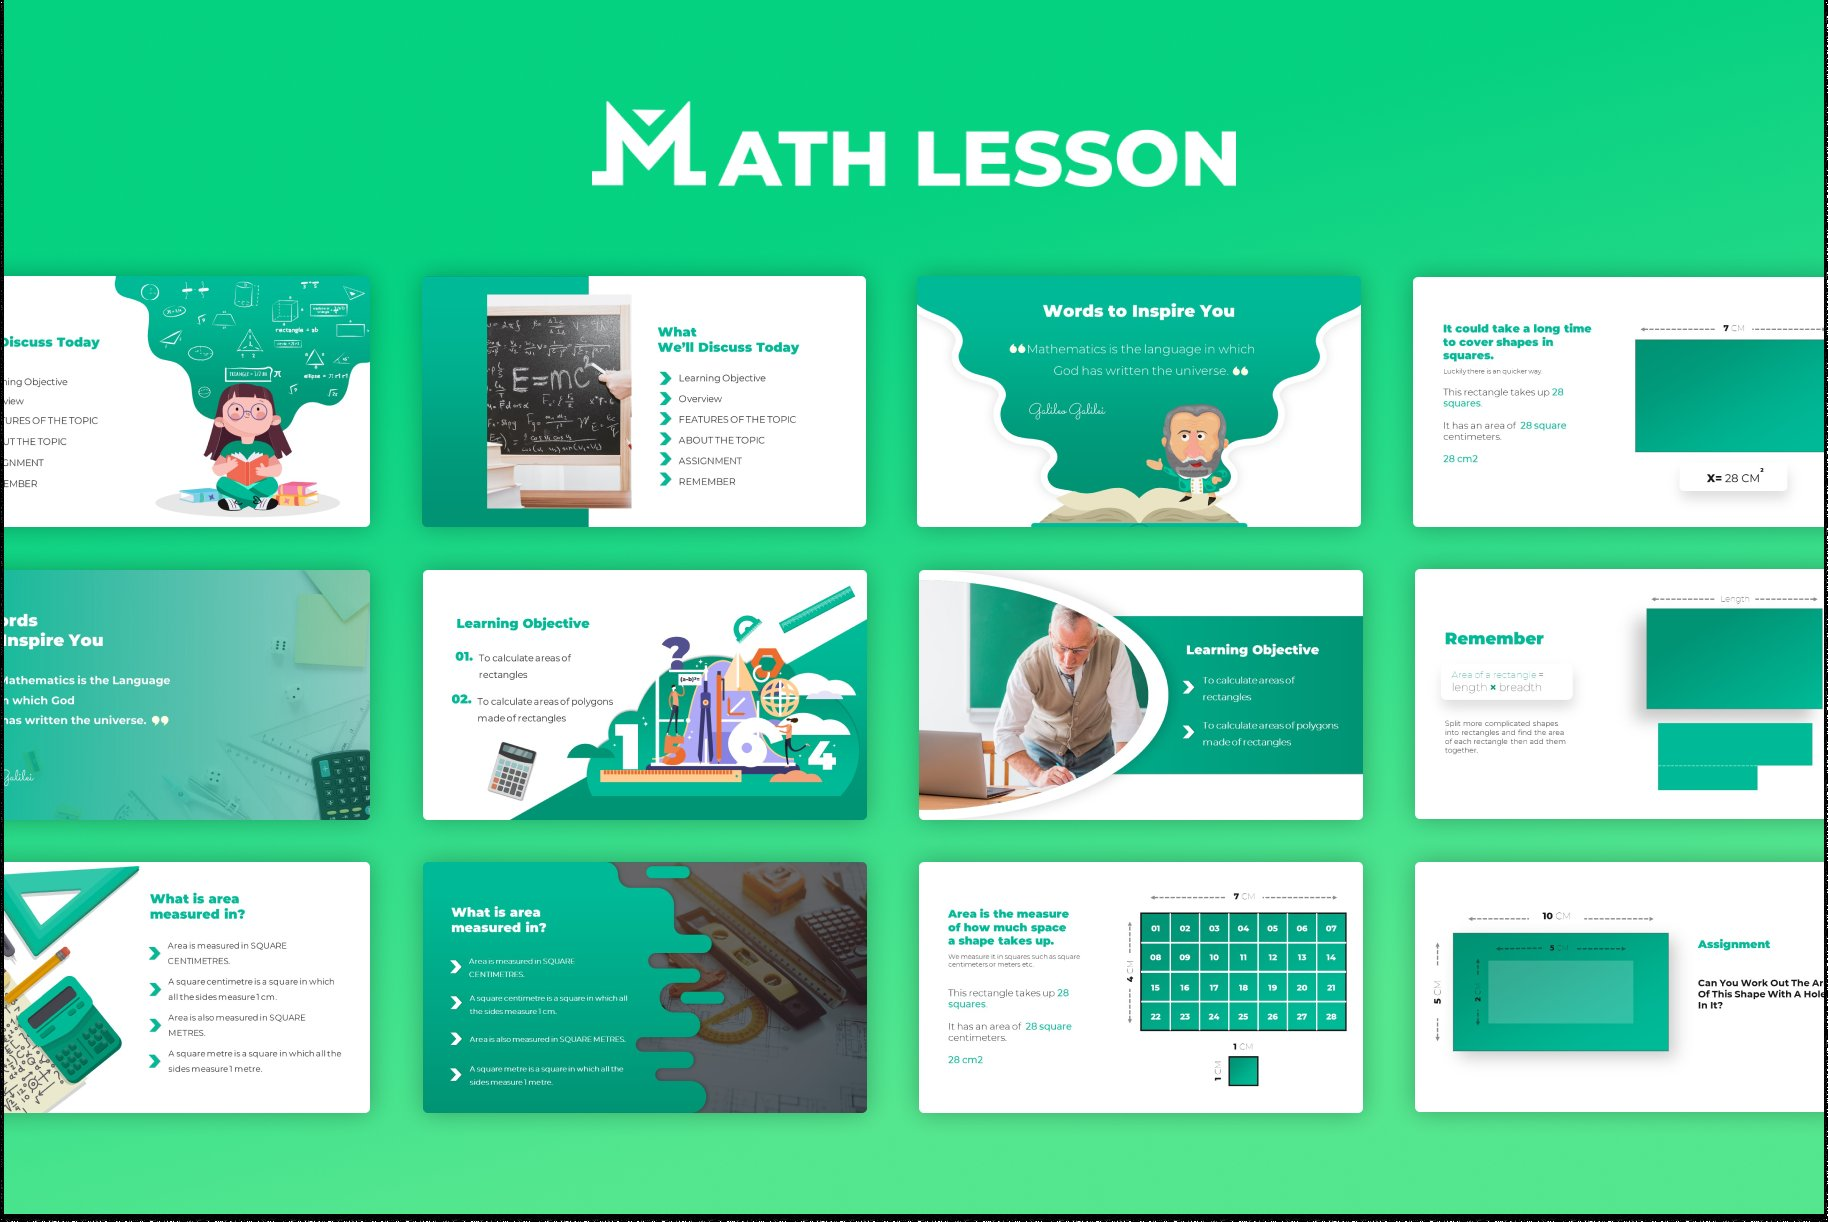 There are many math-related slides here.